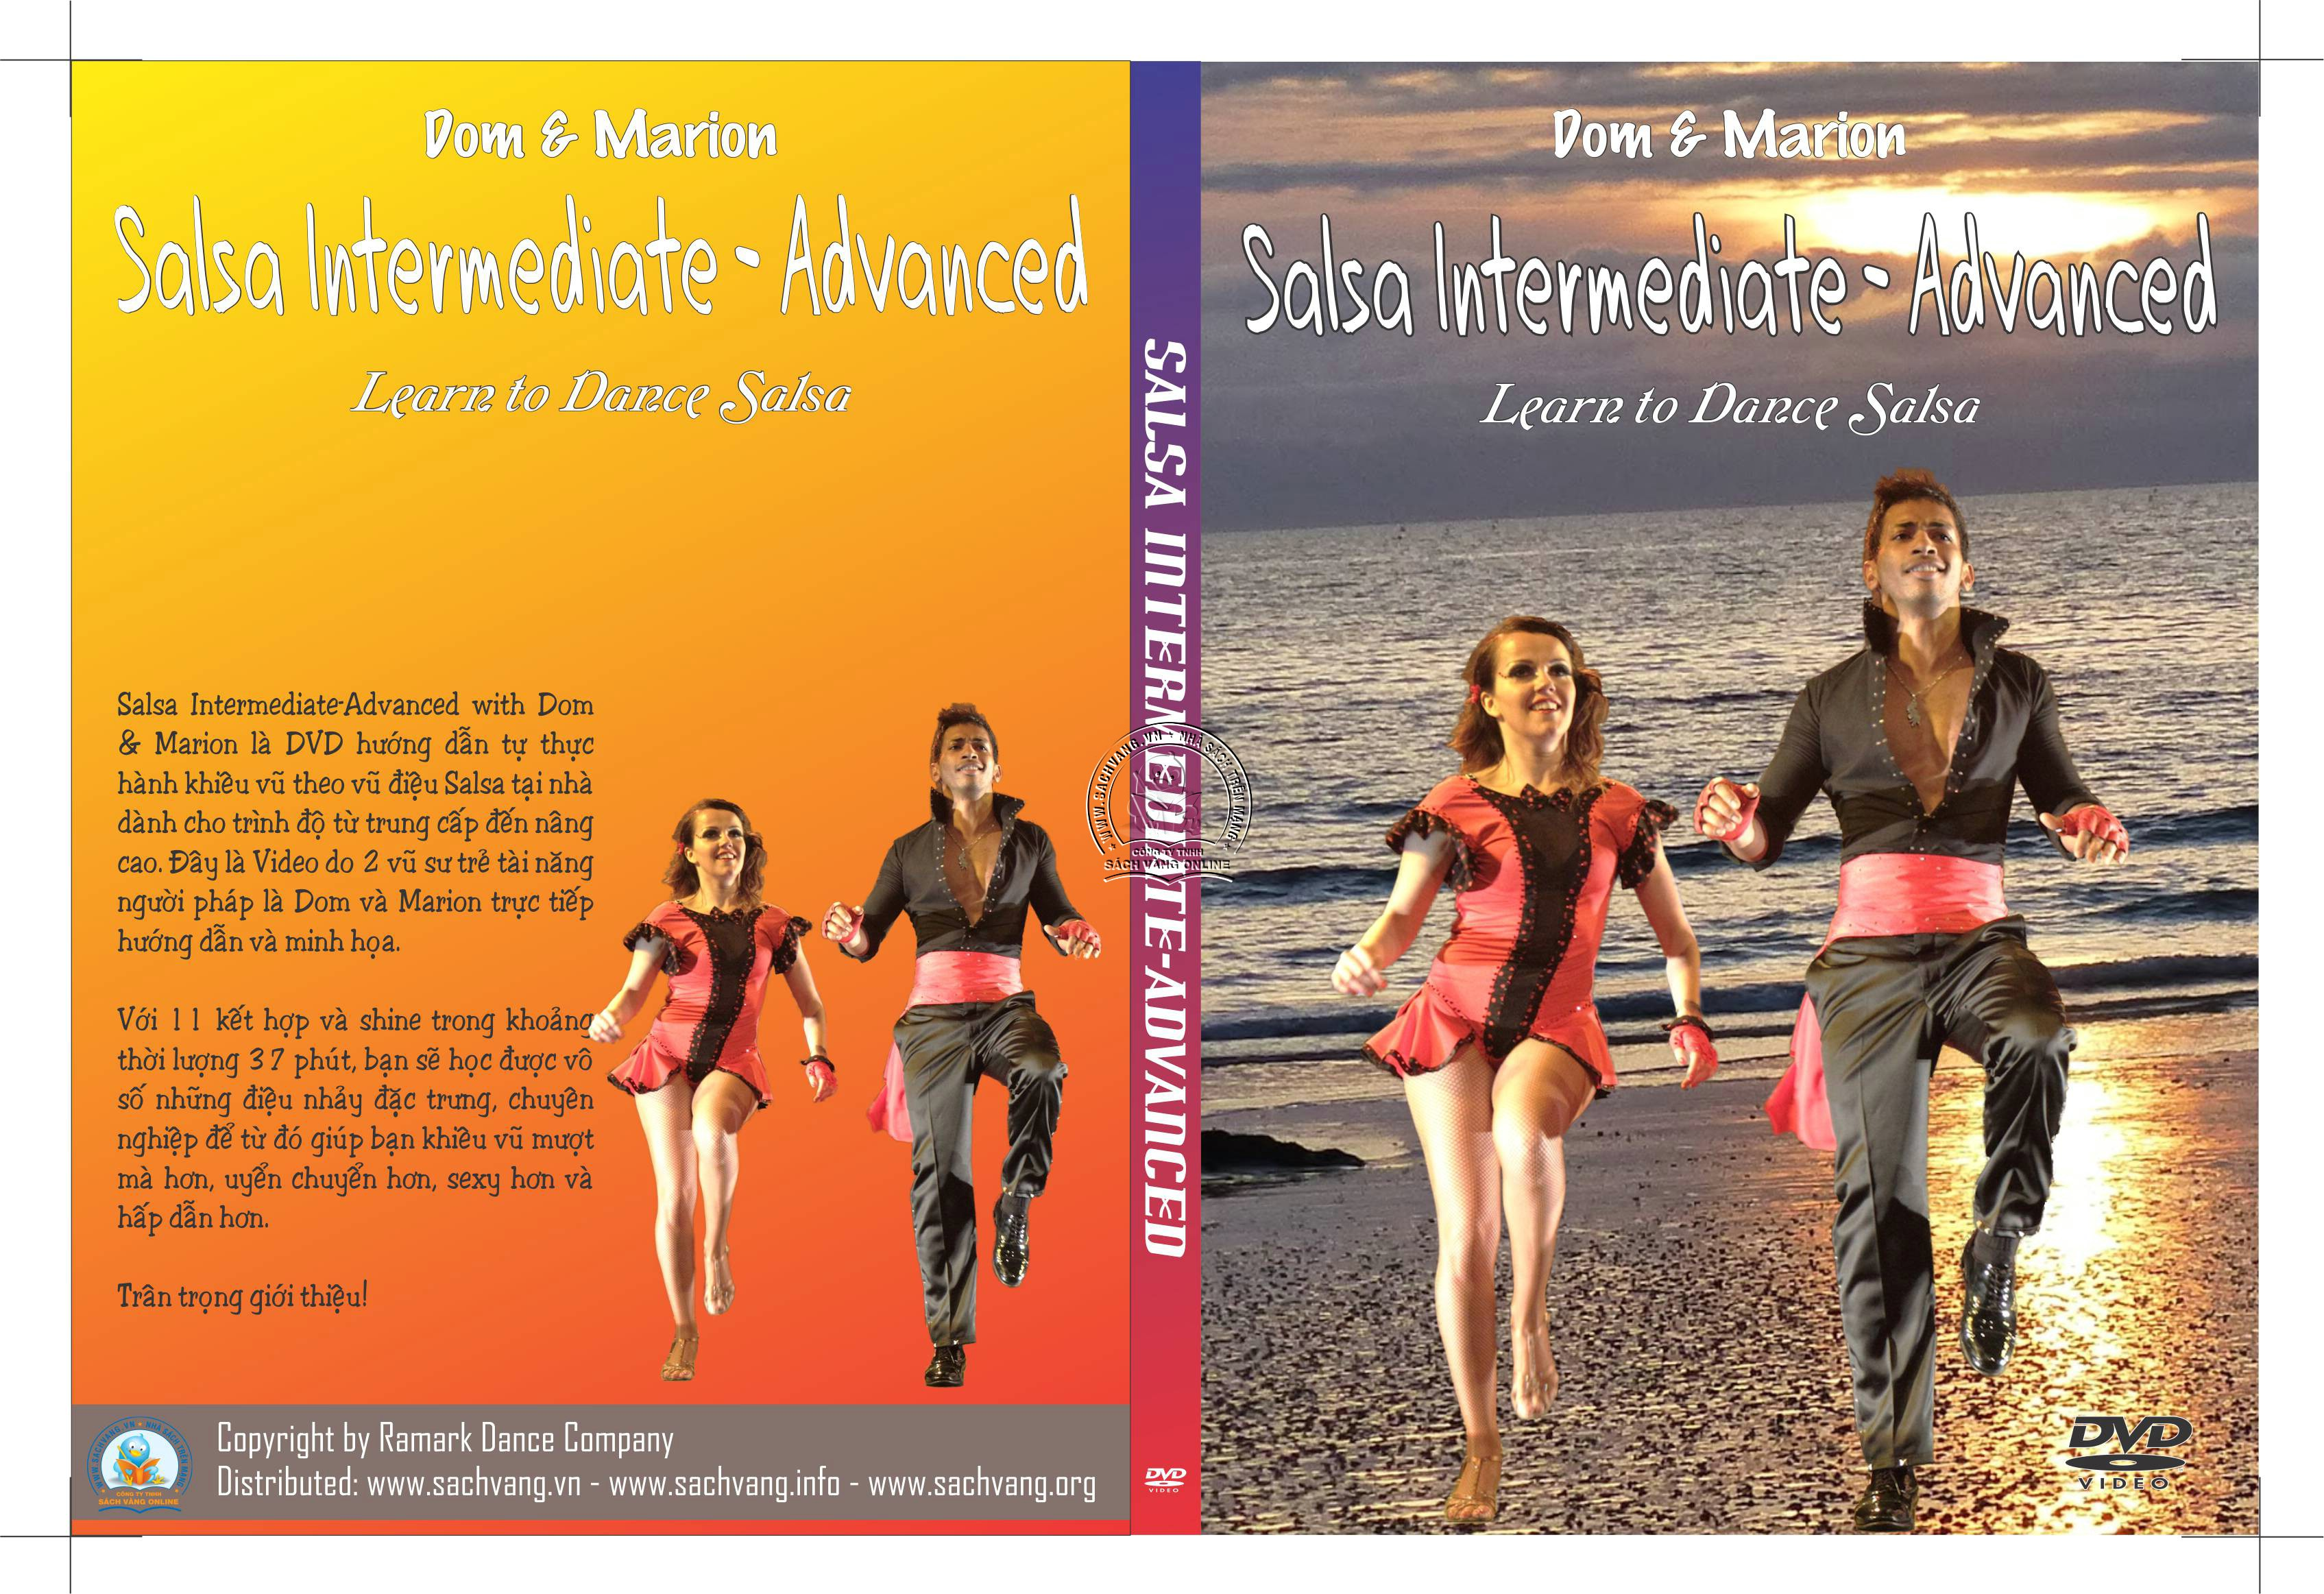 Salsa Intermediate-Advanced with Dom and Marion cover